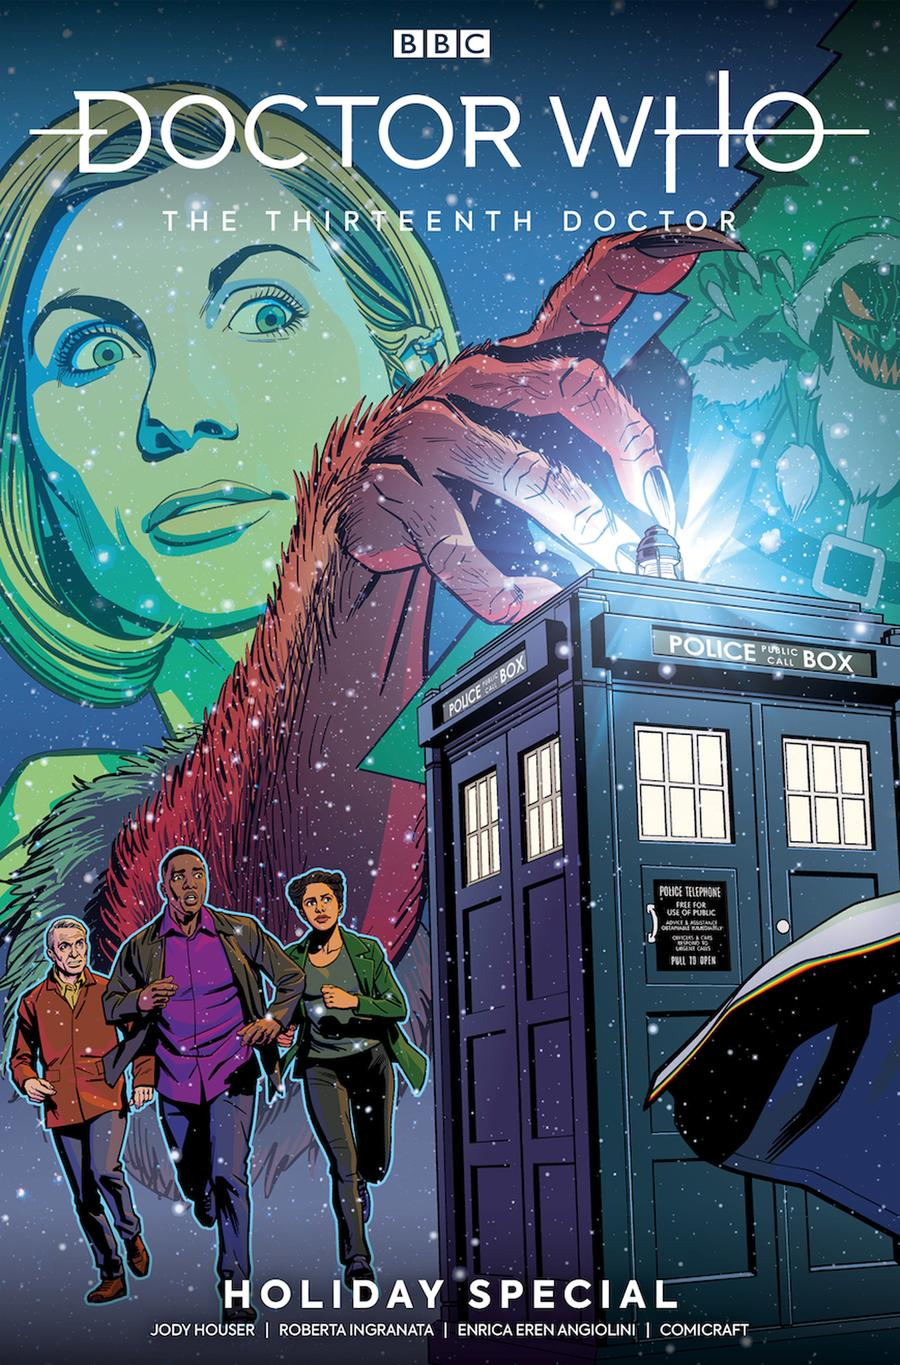 LCSD 2019 Doctor Who 13th Doctor Holiday Special #1 Variant Christopher Jones Connecting Cover